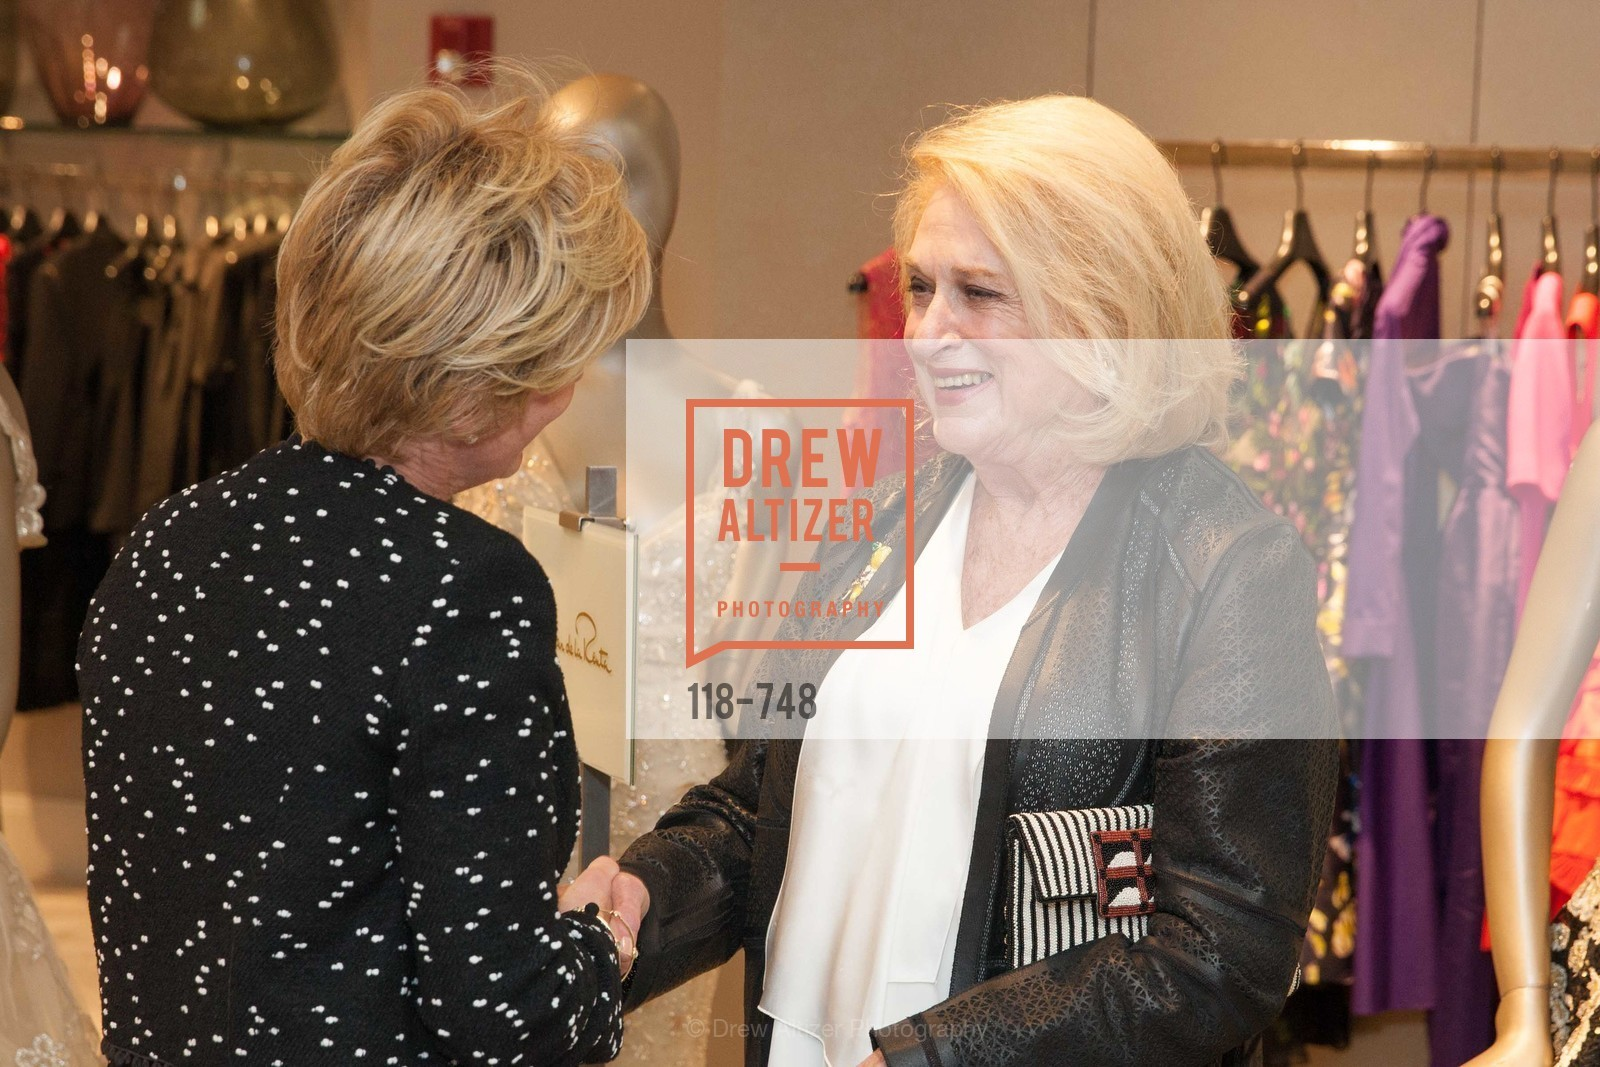 Sally Debenham, PETER COPPING'S Personal Appearance at SAKS FIFTH AVENUE, US, May 22nd, 2015,Drew Altizer, Drew Altizer Photography, full-service agency, private events, San Francisco photographer, photographer california